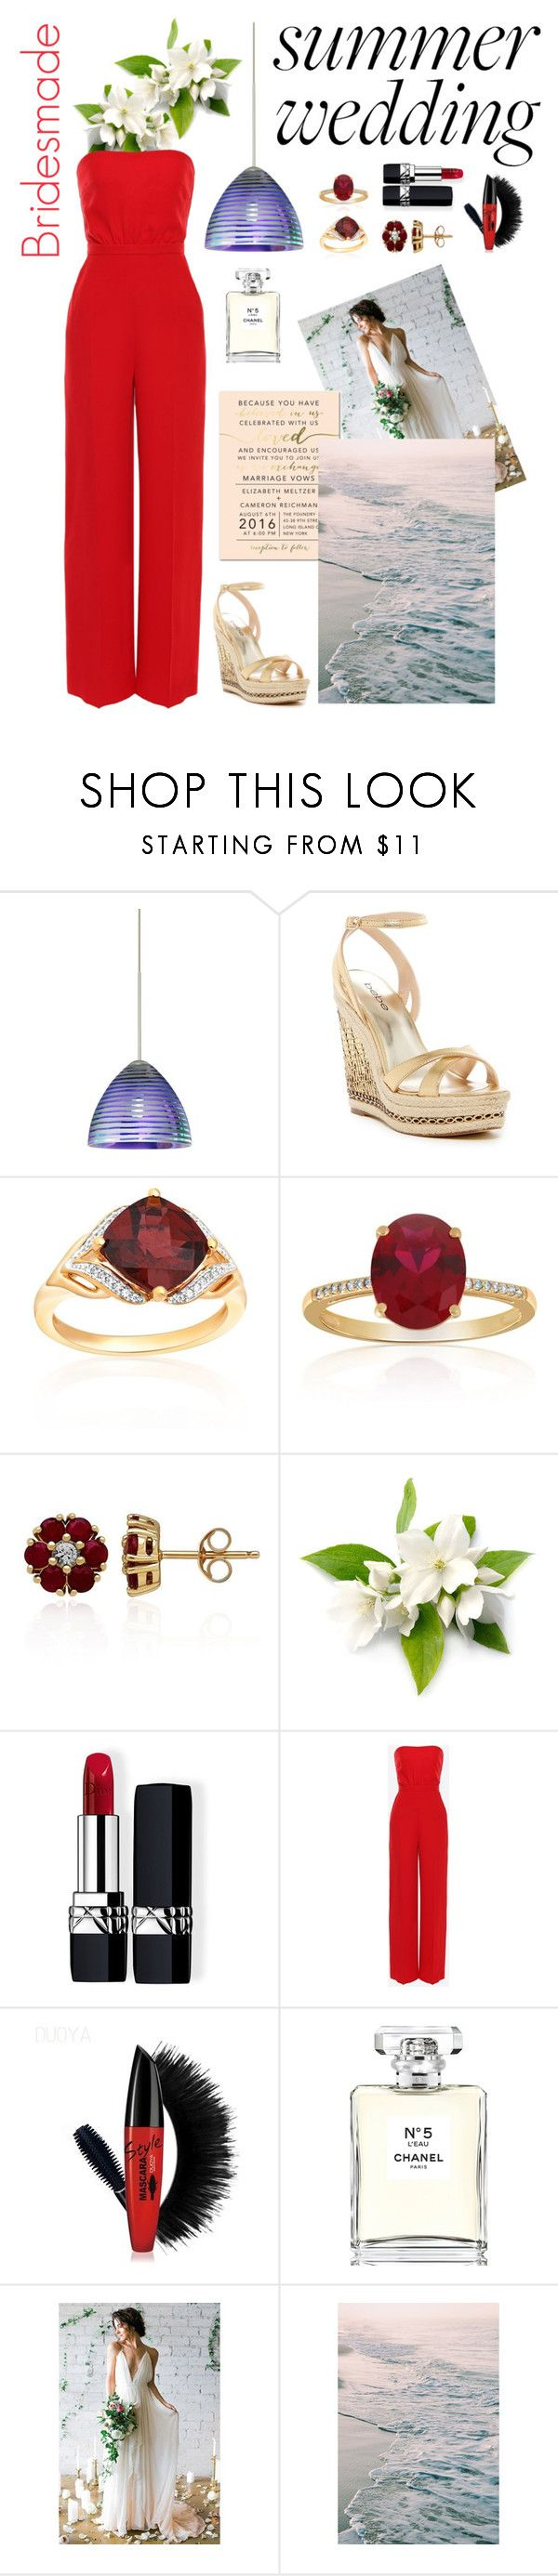 """""""Summer Wedding at the Beach"""" by apples-ed ❤ liked on Polyvore featuring Besa Lighting, Bebe, Belk & Co., Christian Dior, Valentino and Chanel"""